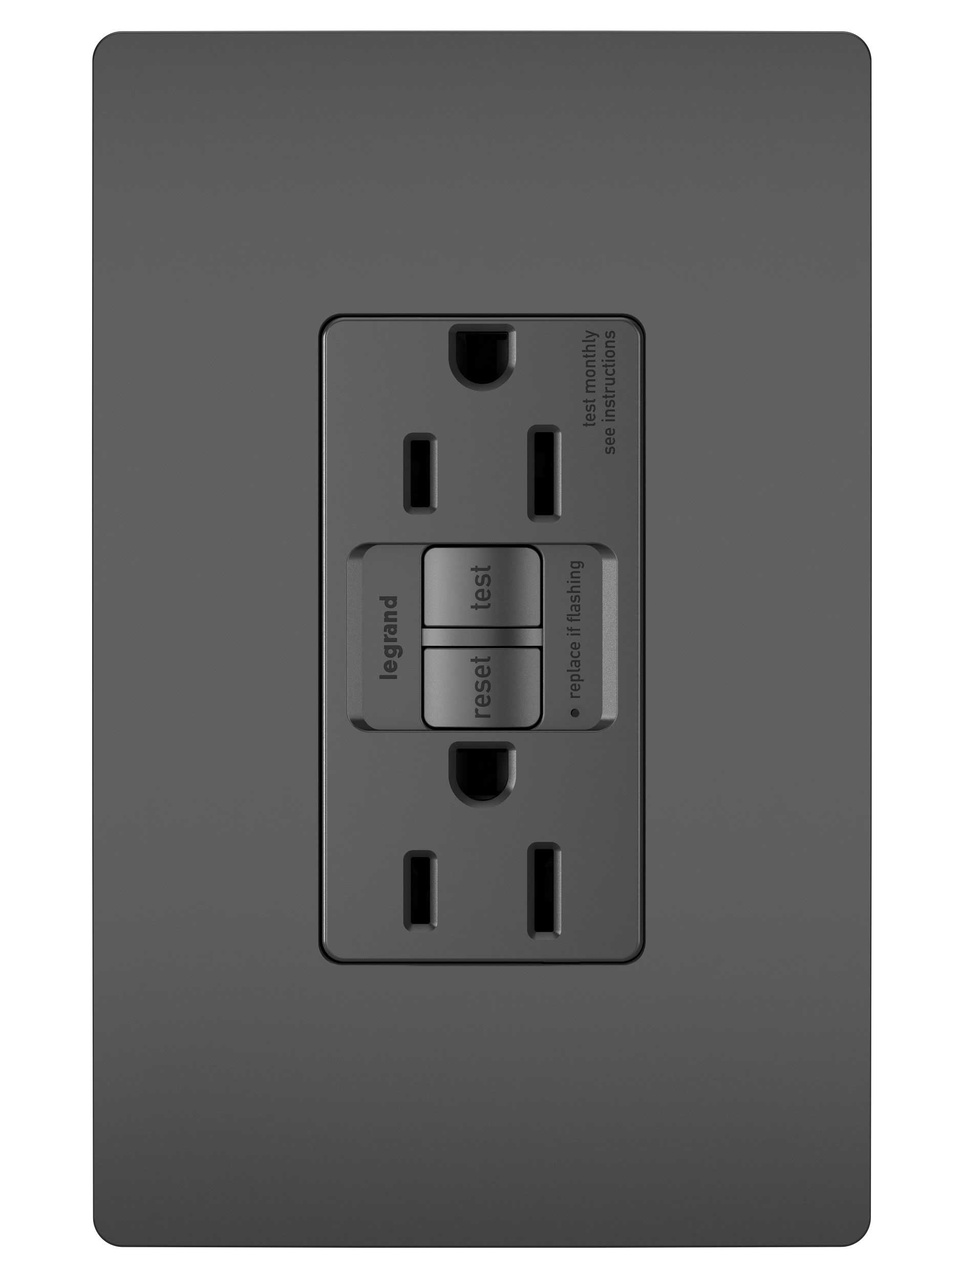 Radiant Spec Grade Dead Front 20a Self Test Gfci Receptacle Black Home Wiring Outlets Per Circuit 1597bk P